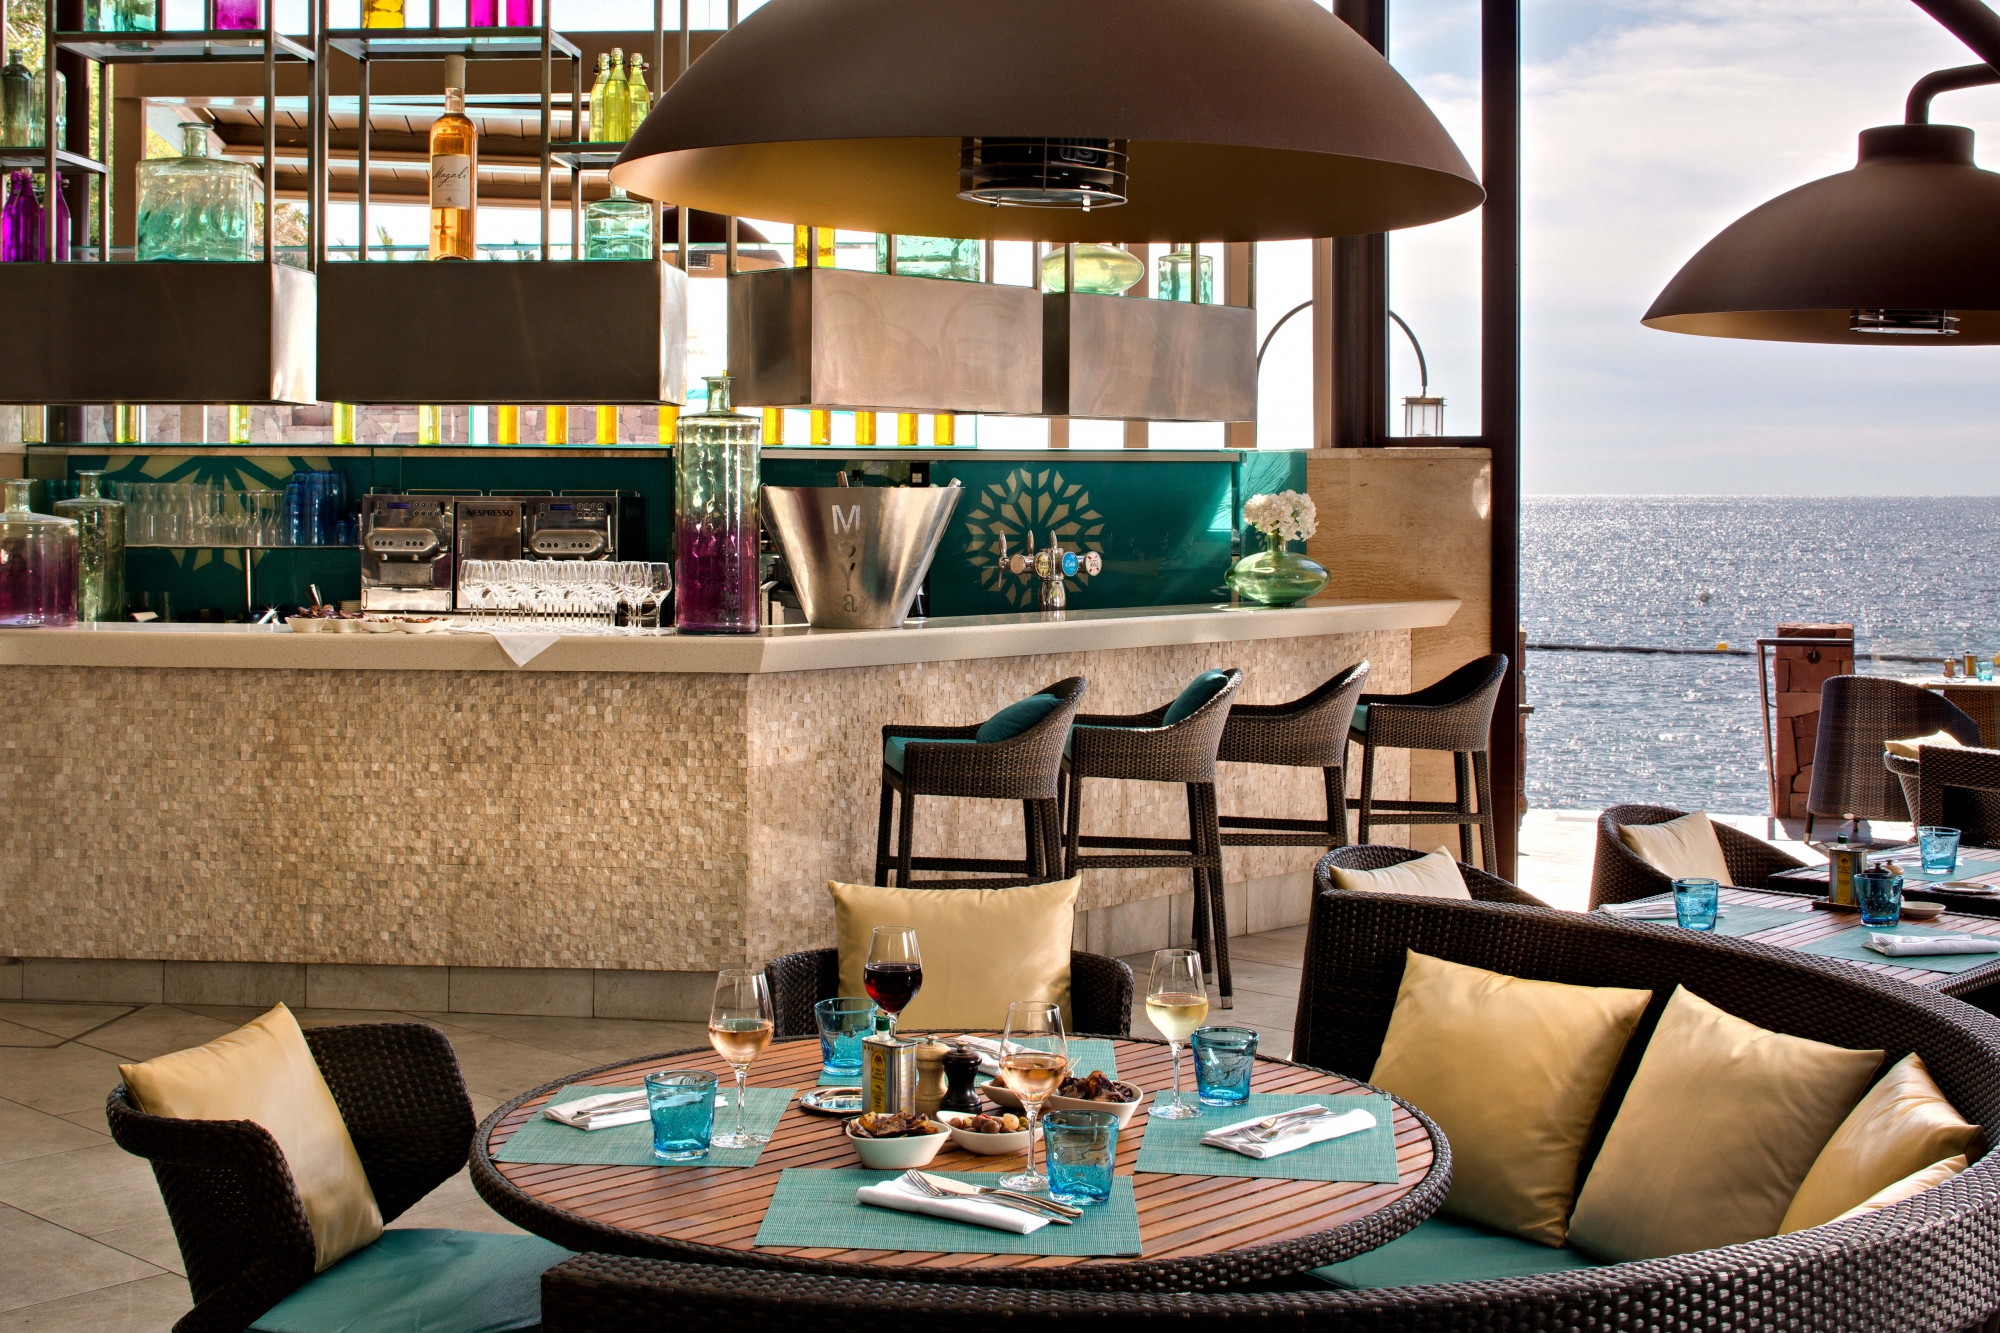 512/import-from-v1/images/divers/Moya-Beach-Restaurant-Basse_res.jpg